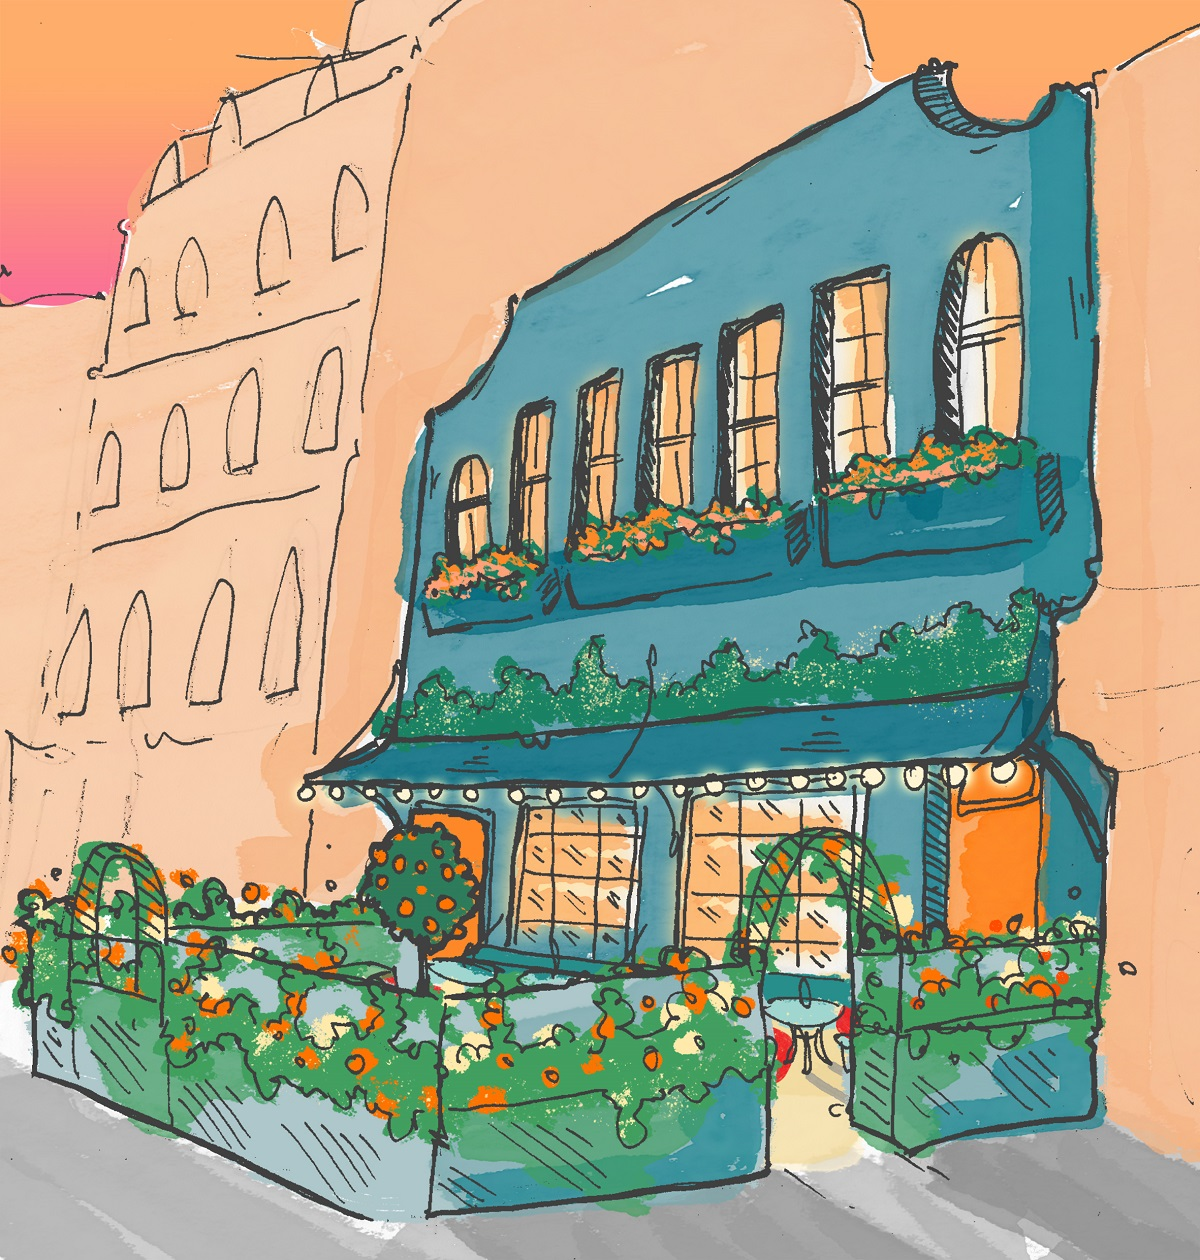 Check Out These Awesome New London Openings! The Little Orange Door